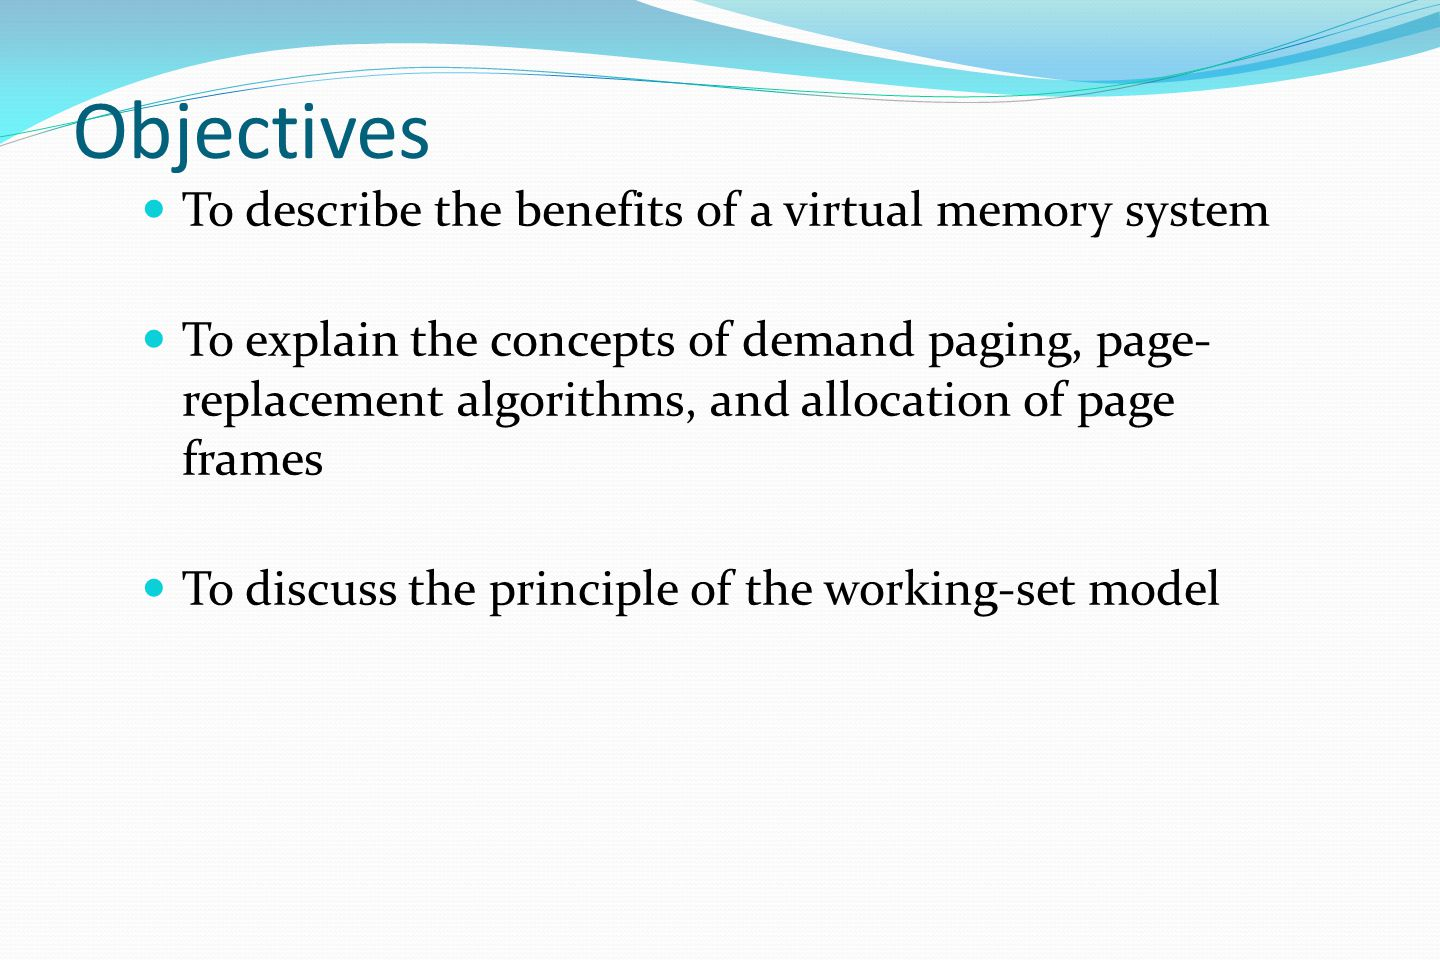 Objectives To describe the benefits of a virtual memory system To explain the concepts of demand paging, page- replacement algorithms, and allocation of page frames To discuss the principle of the working-set model